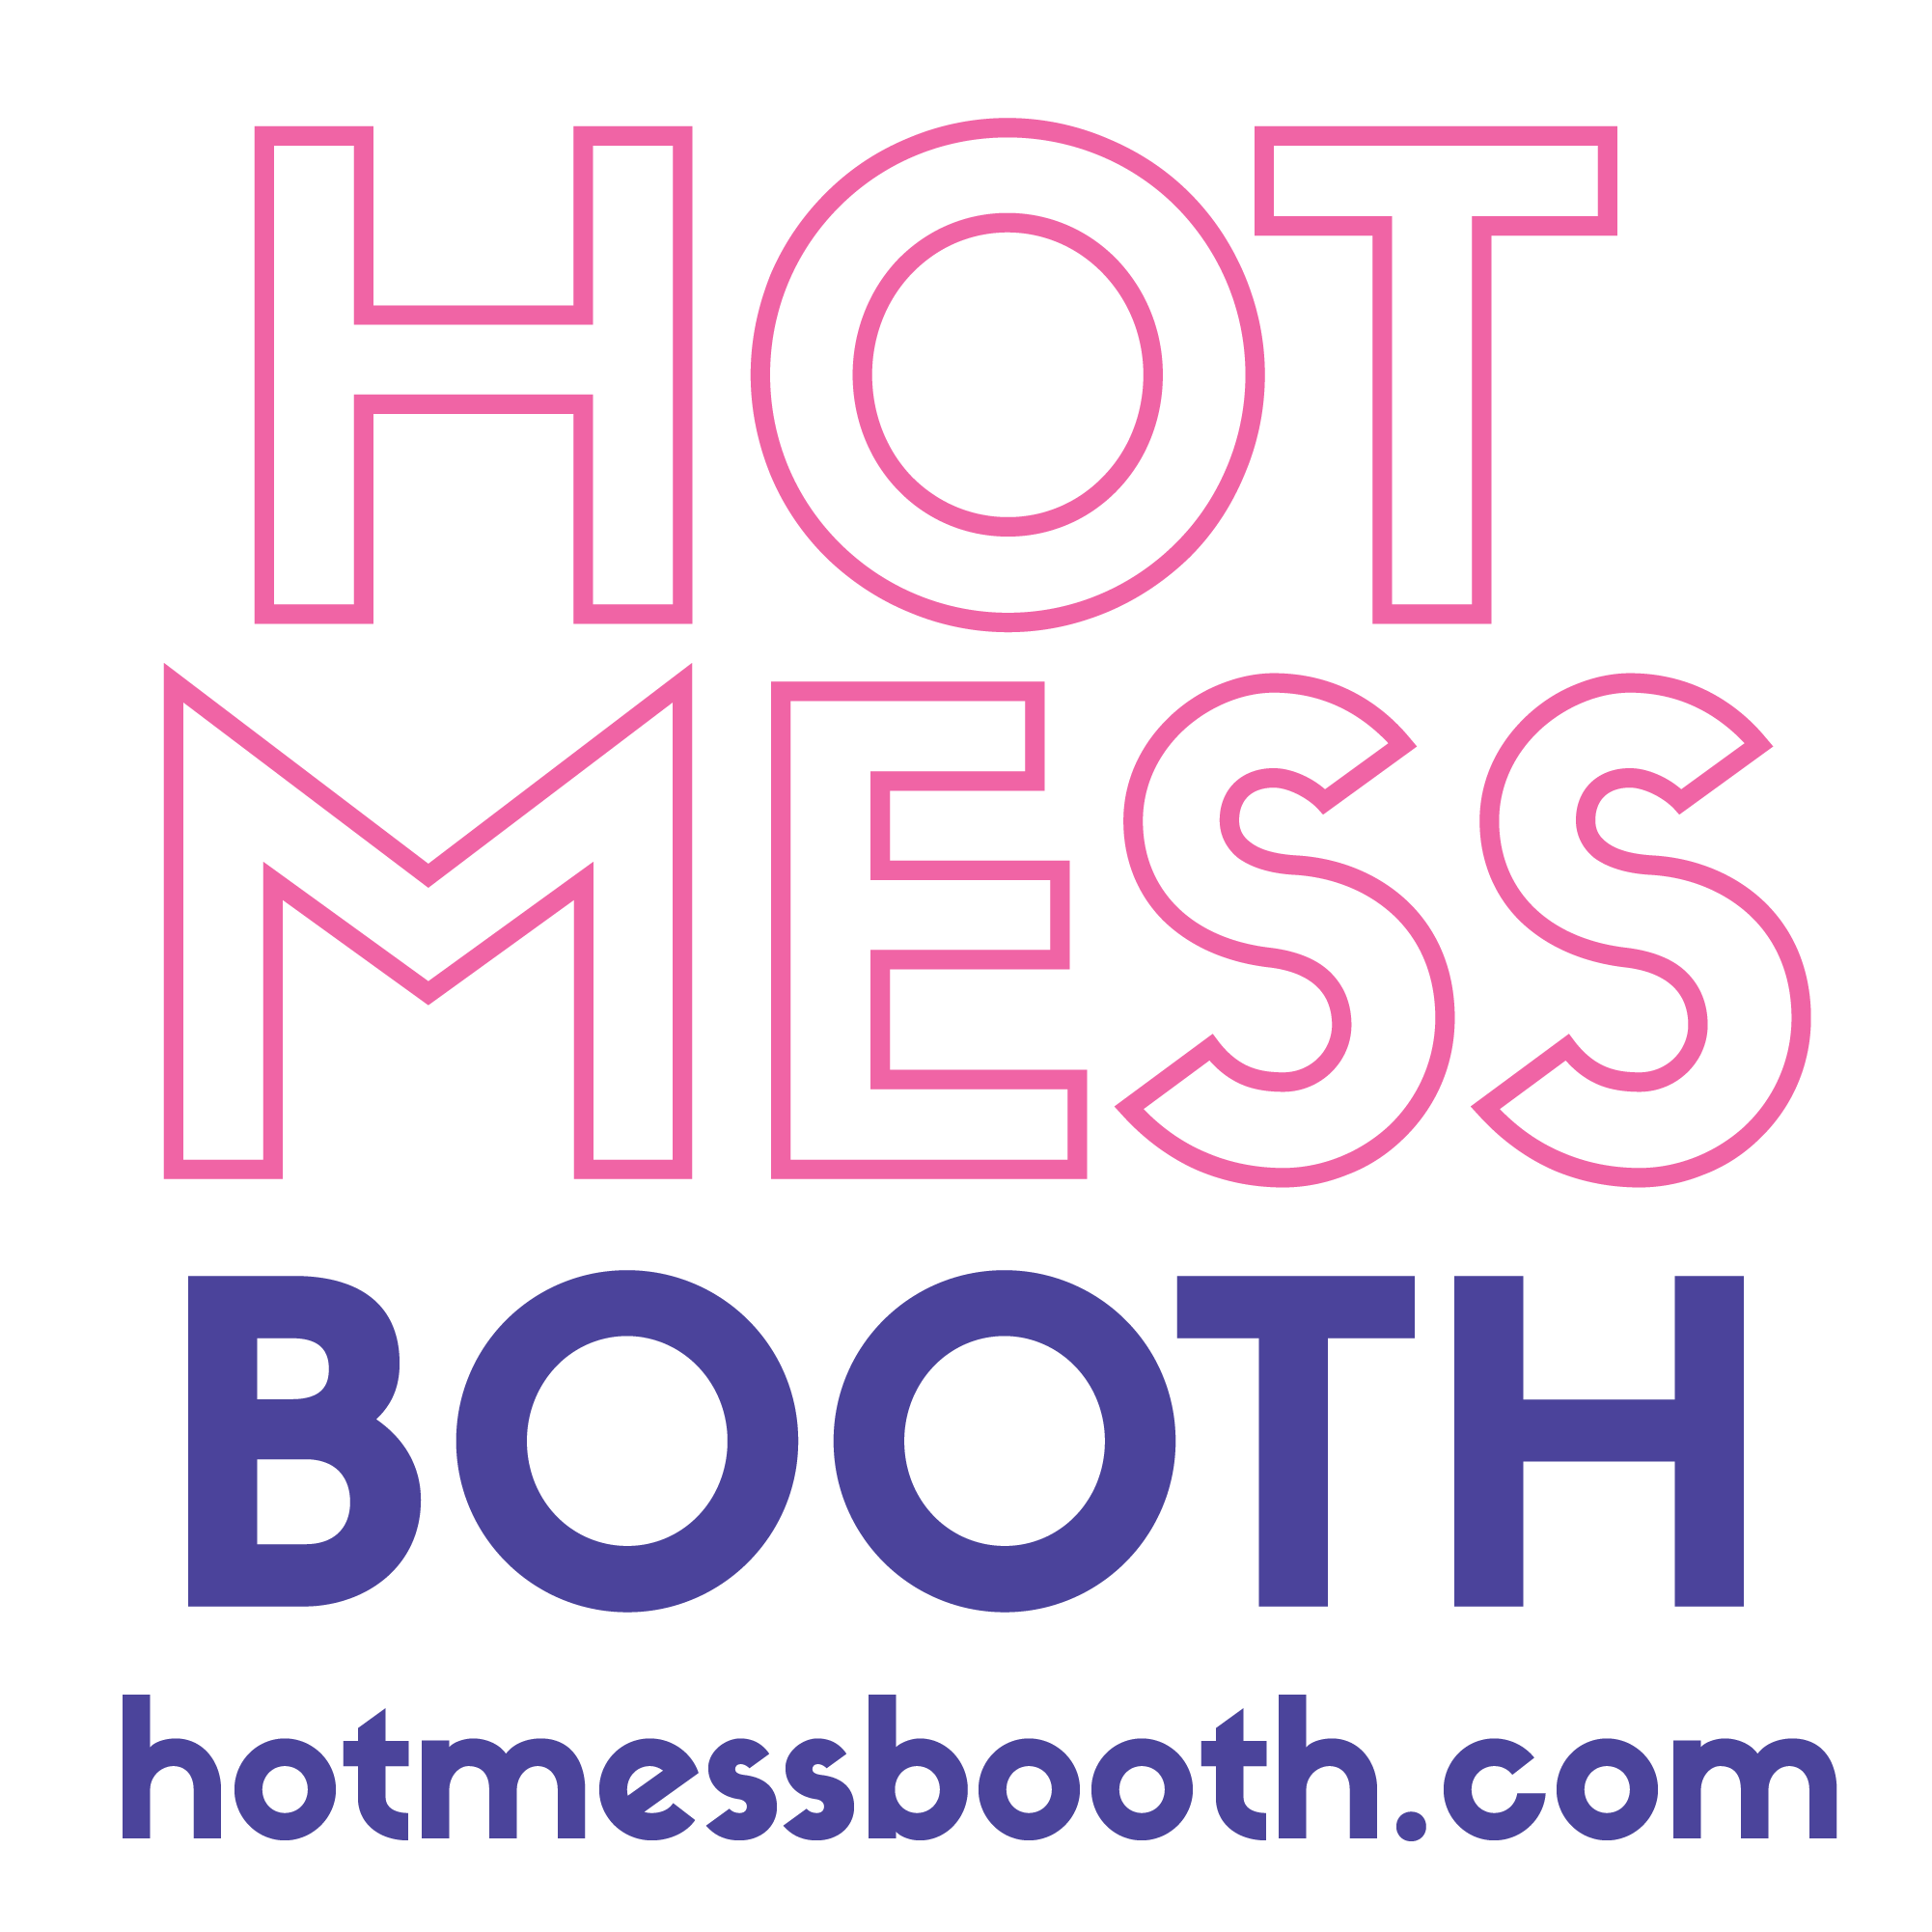 Hot Mess Booth image 4